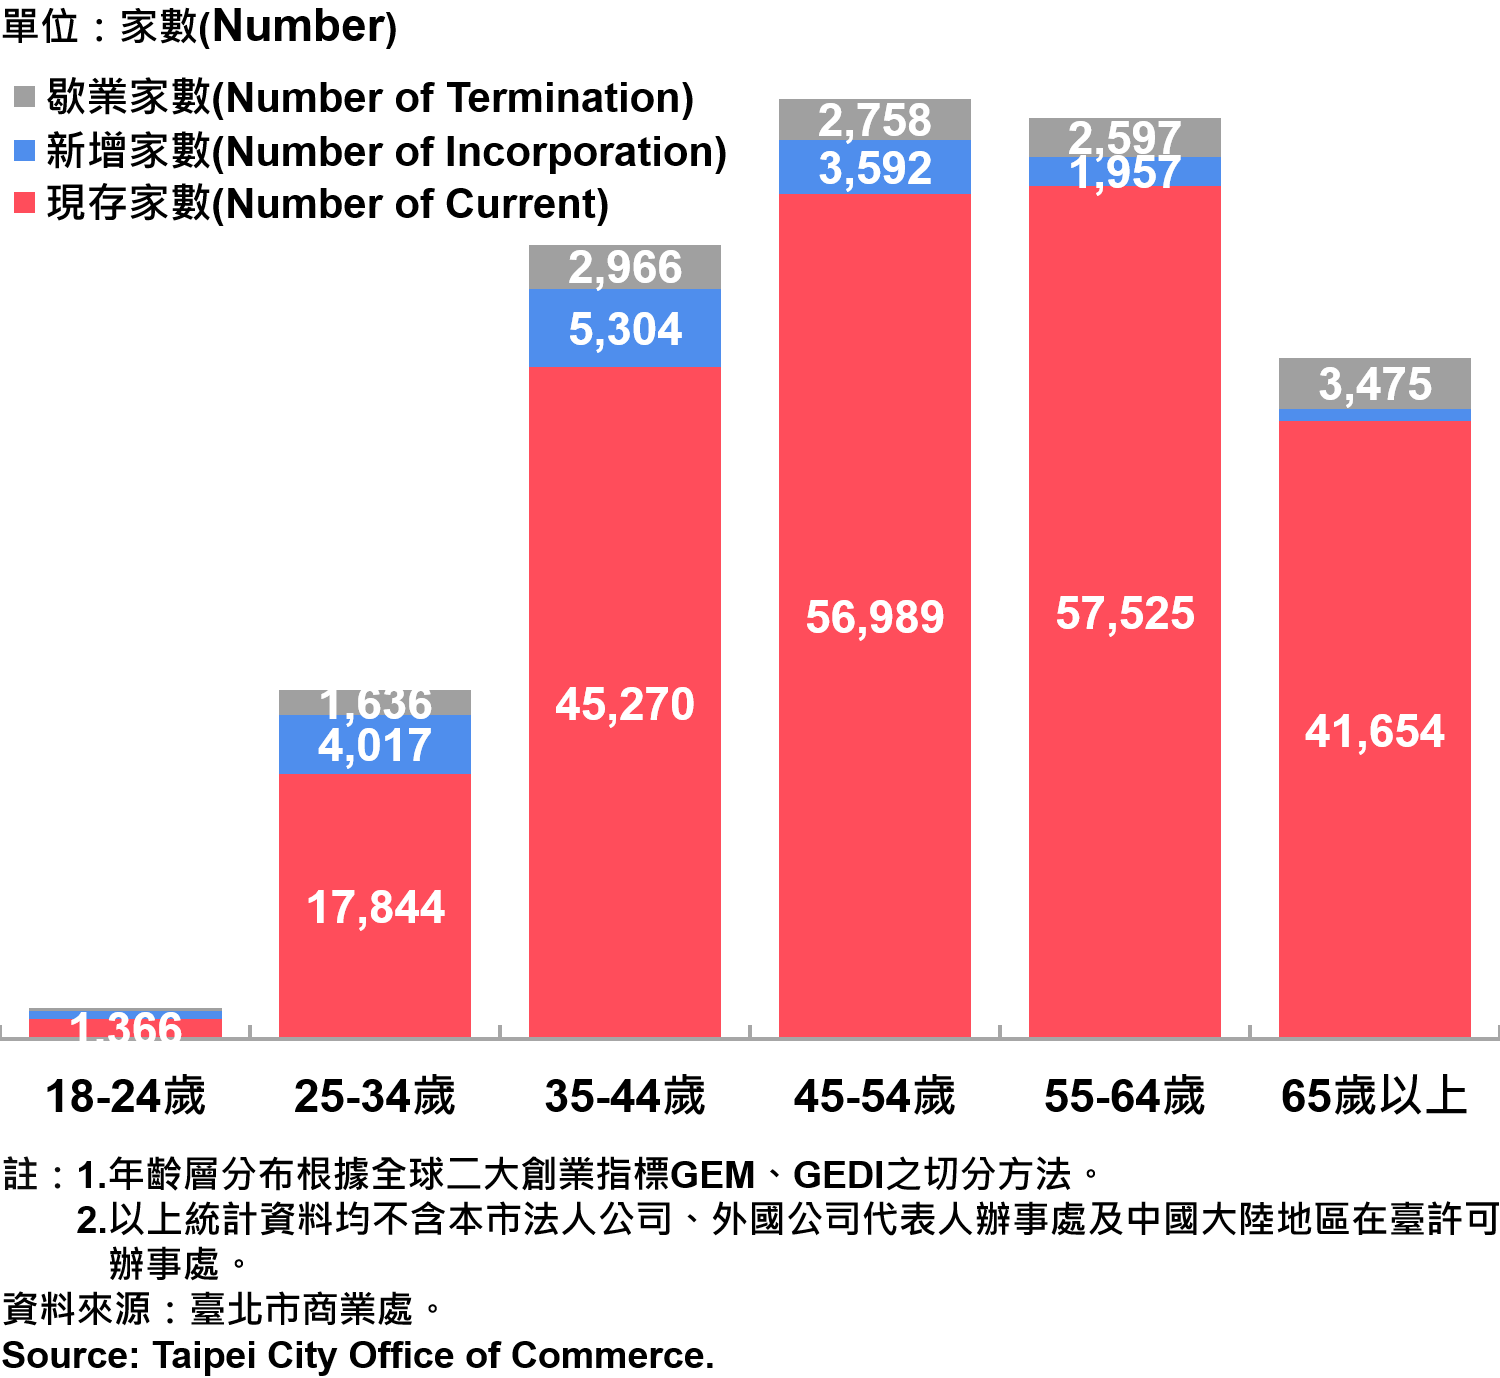 臺北市公司行號負責人年齡分布情形—2019 Responsible Person of Newly Registered Companies In Taipei by Age—2019